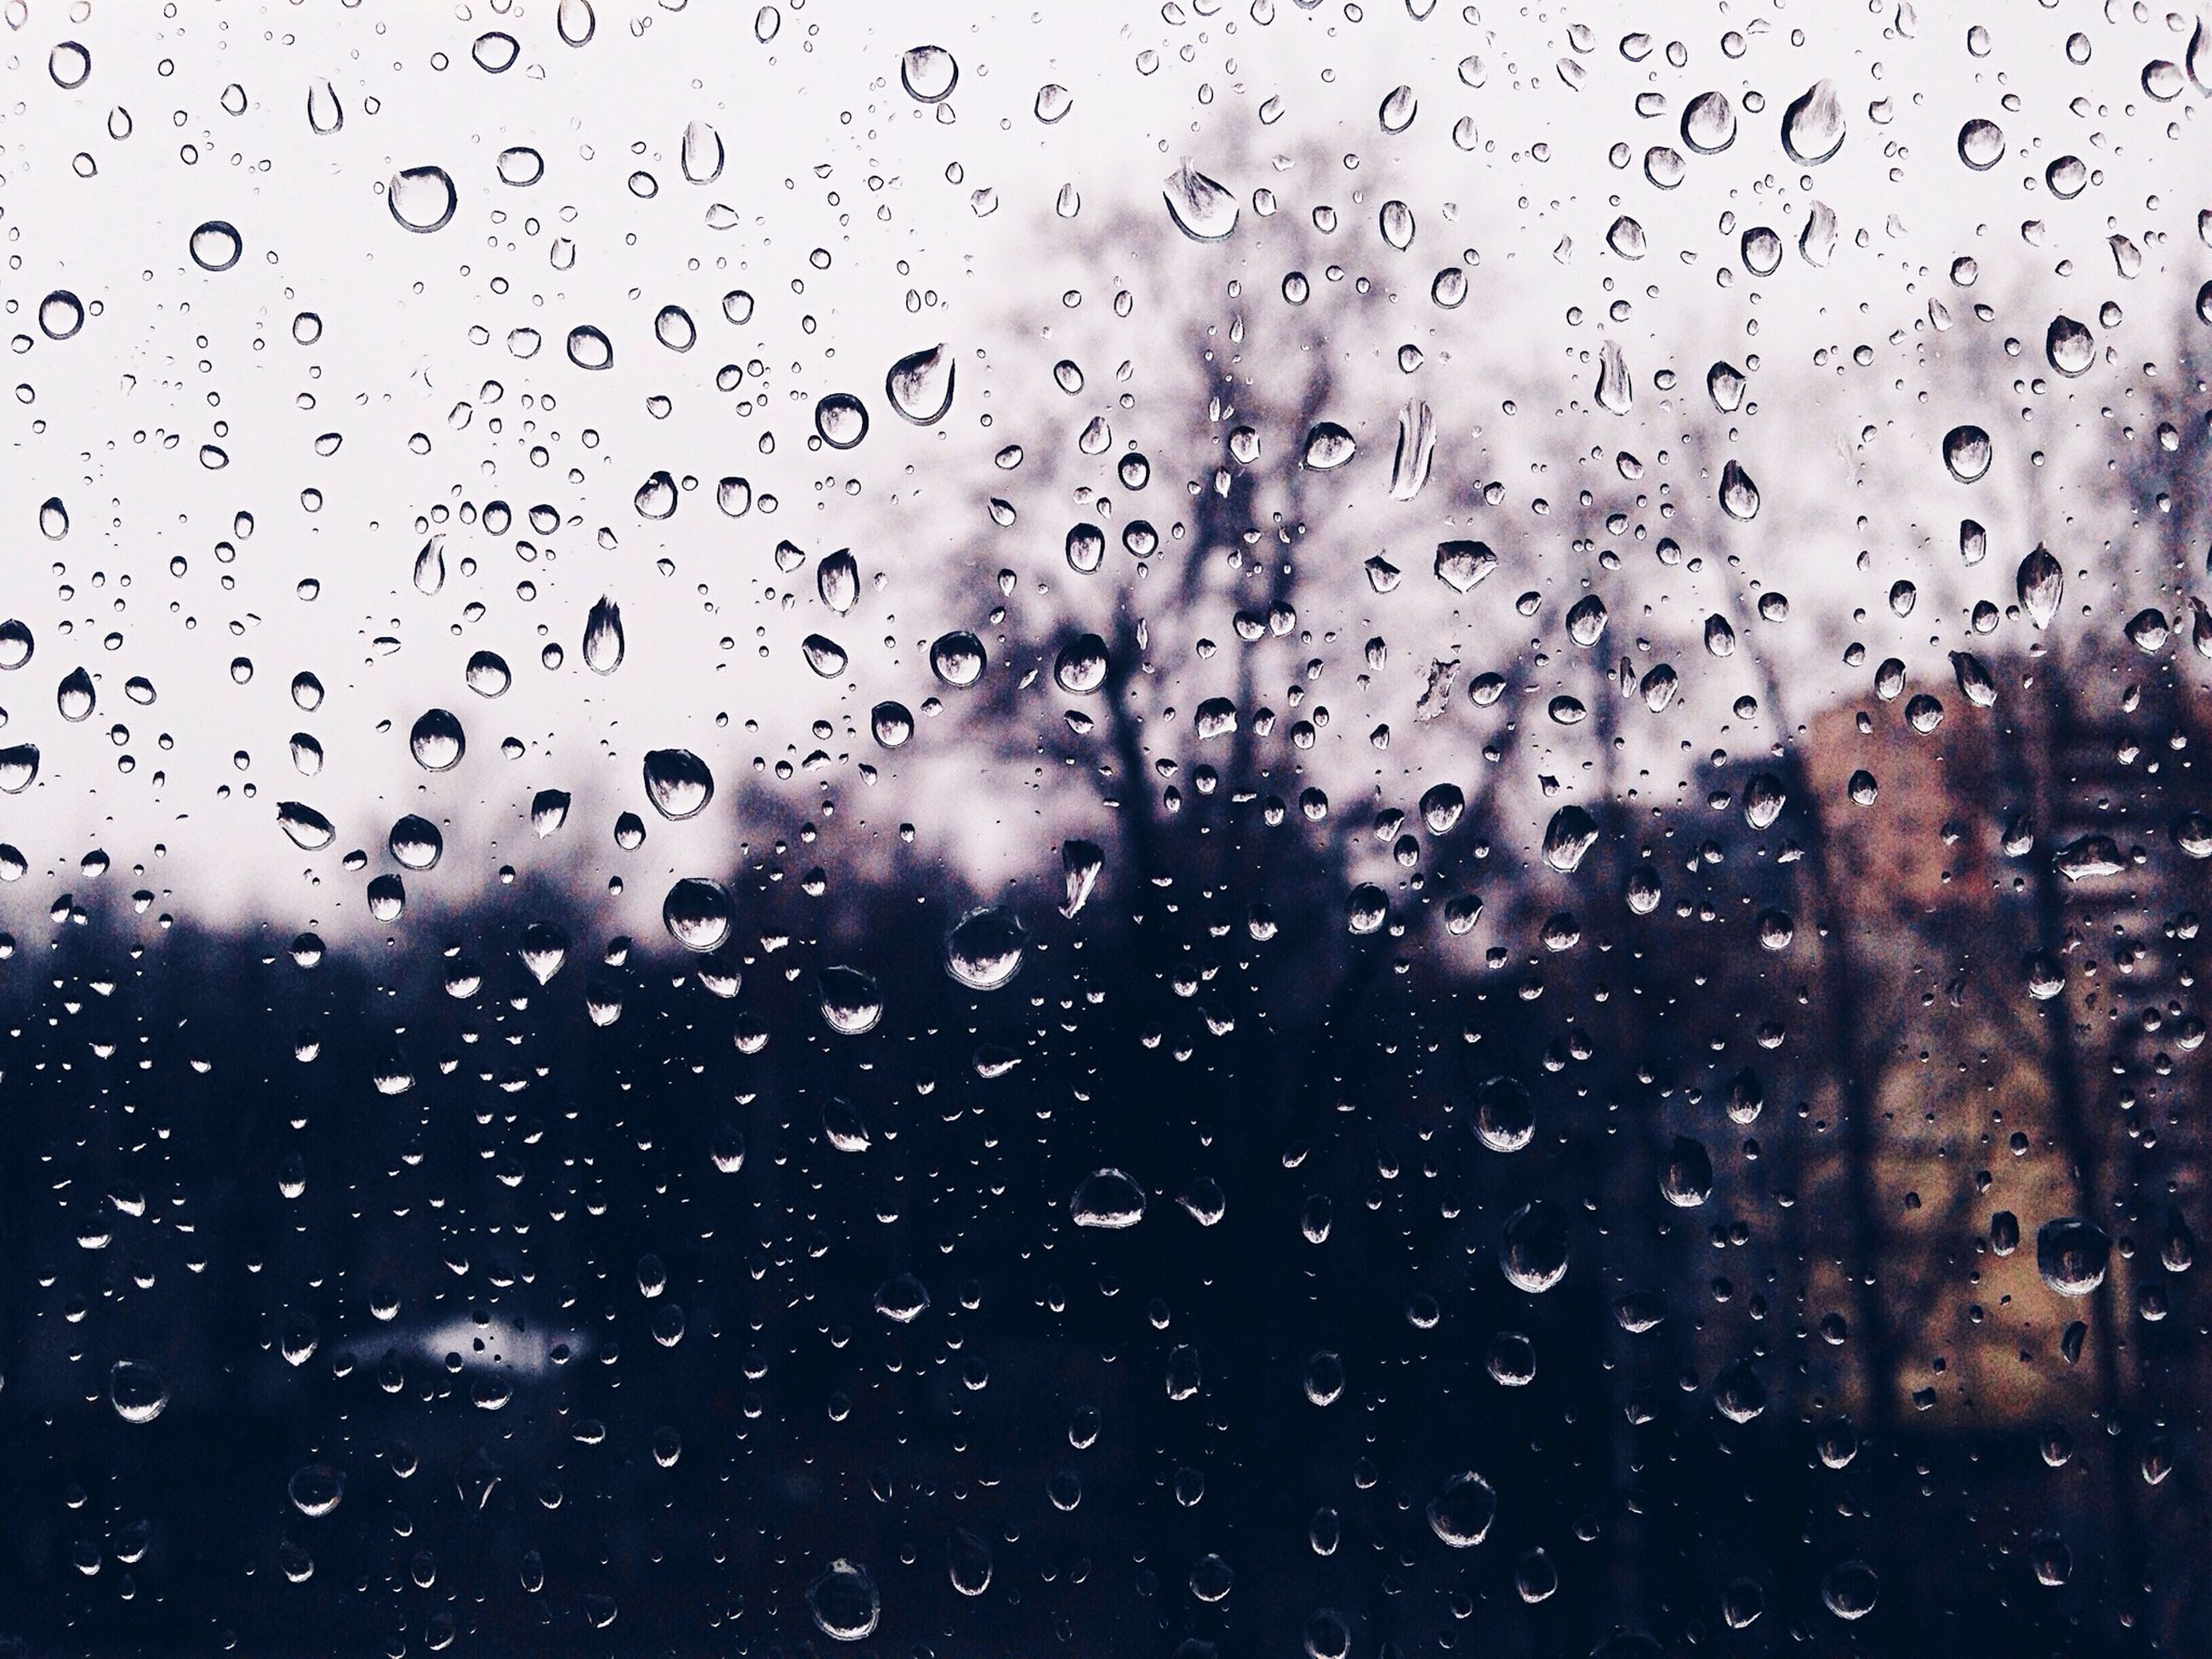 drop, wet, window, rain, indoors, transparent, water, raindrop, weather, glass - material, season, full frame, backgrounds, focus on foreground, glass, sky, close-up, droplet, water drop, monsoon